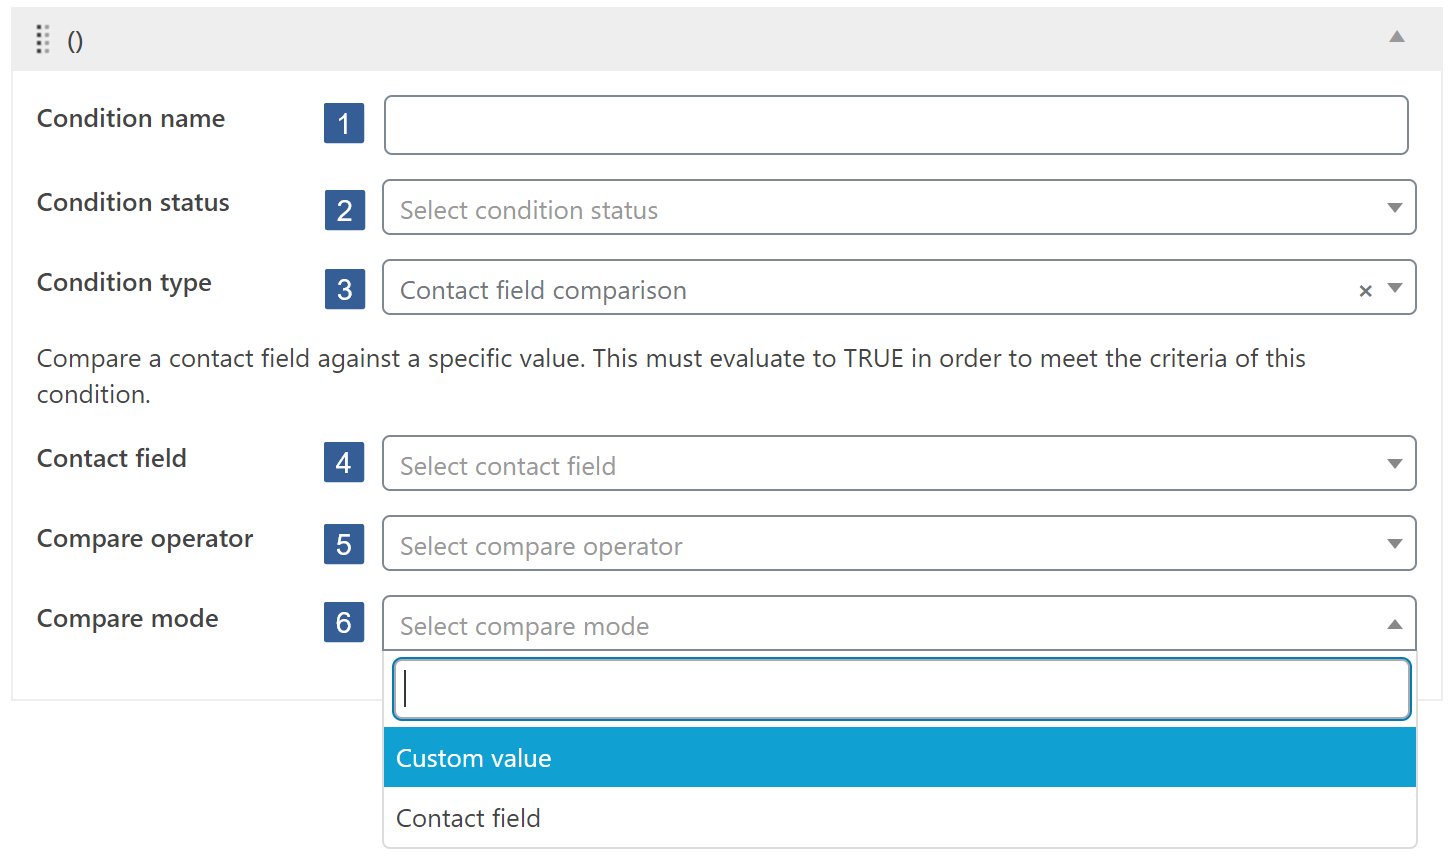 Steps for specifying contact field comparison condition